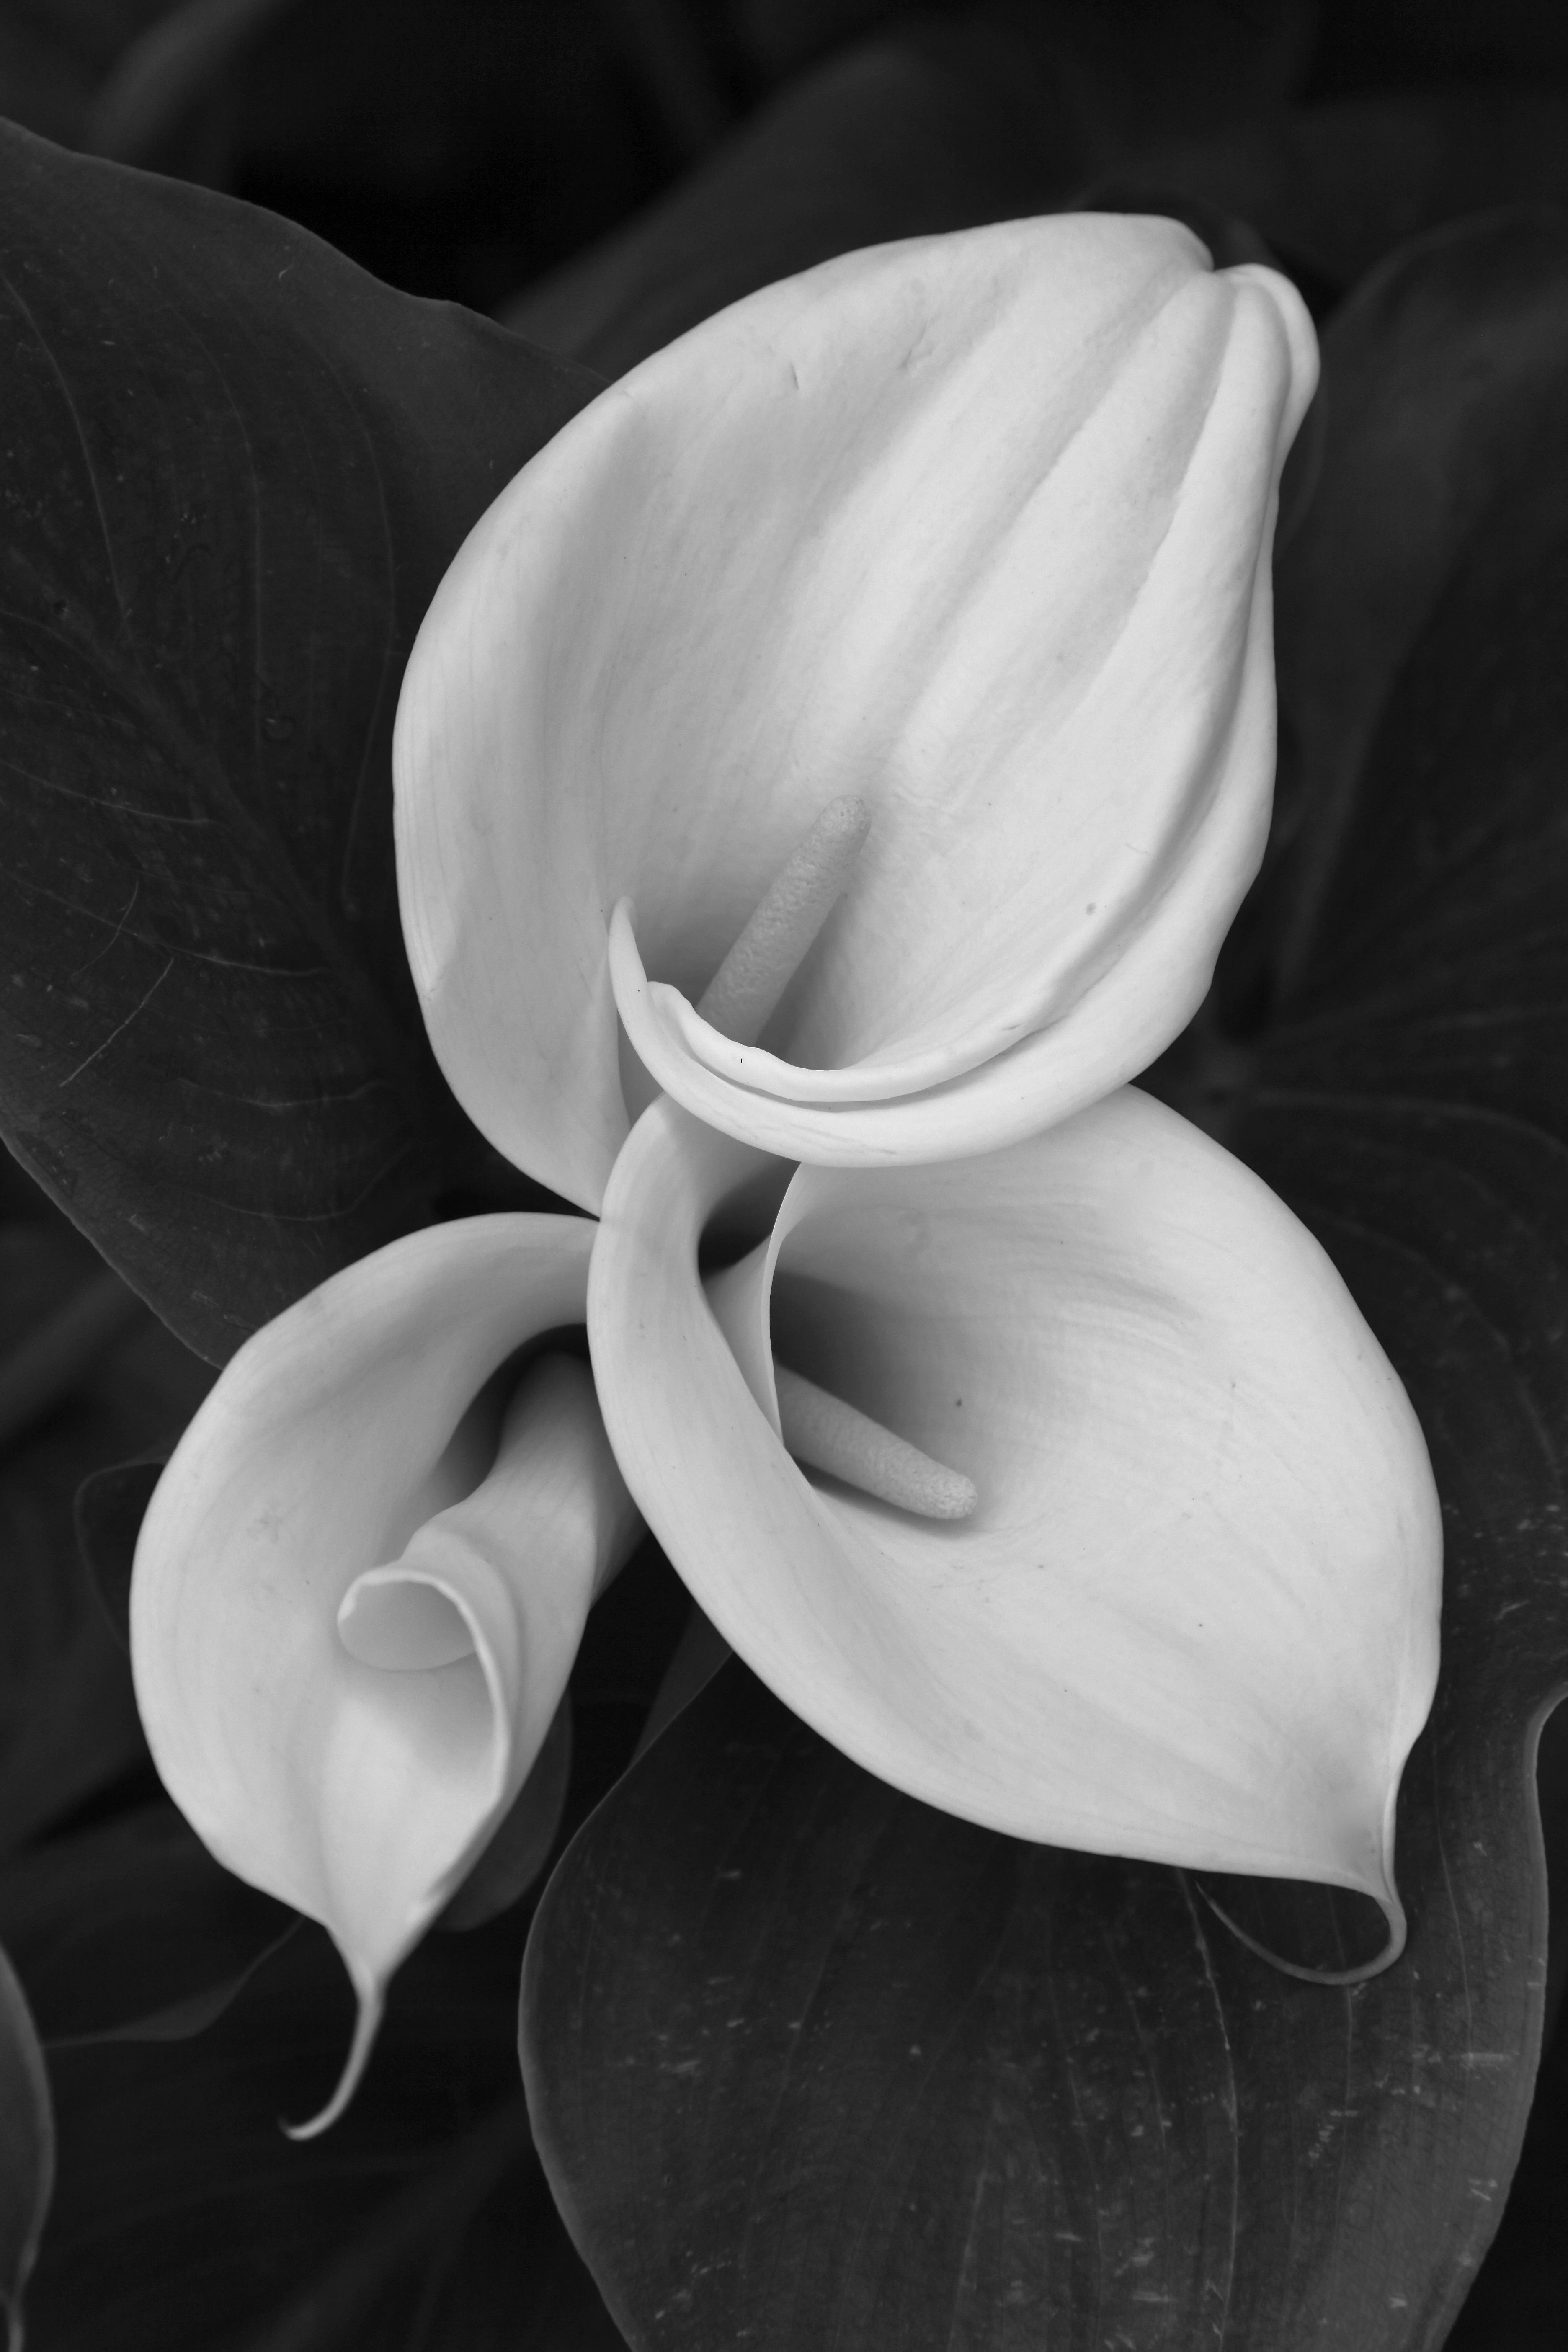 Ethereal landscapes nature photography by donna geissler - By Imogene Cunningham Lovely Photos Pinterest Photography Famous Photographers And Photographers